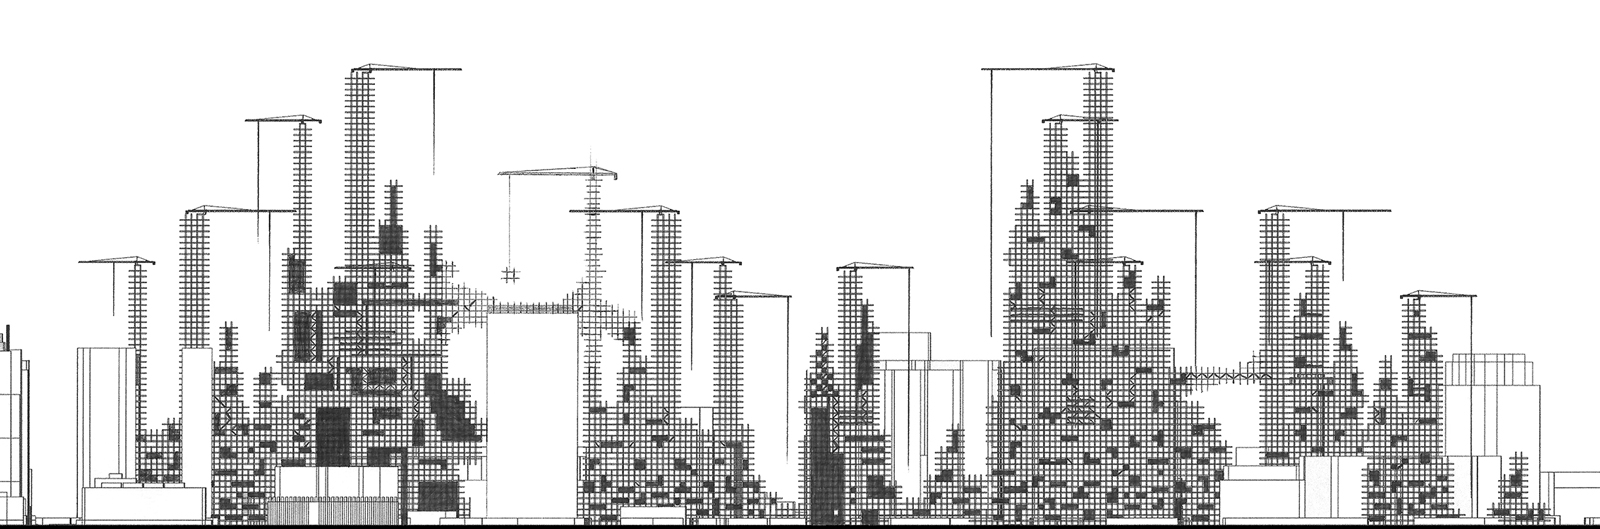 Concept section of a city of infill that grows organically throughout the voids of Phoenix by student Andrew Synacek